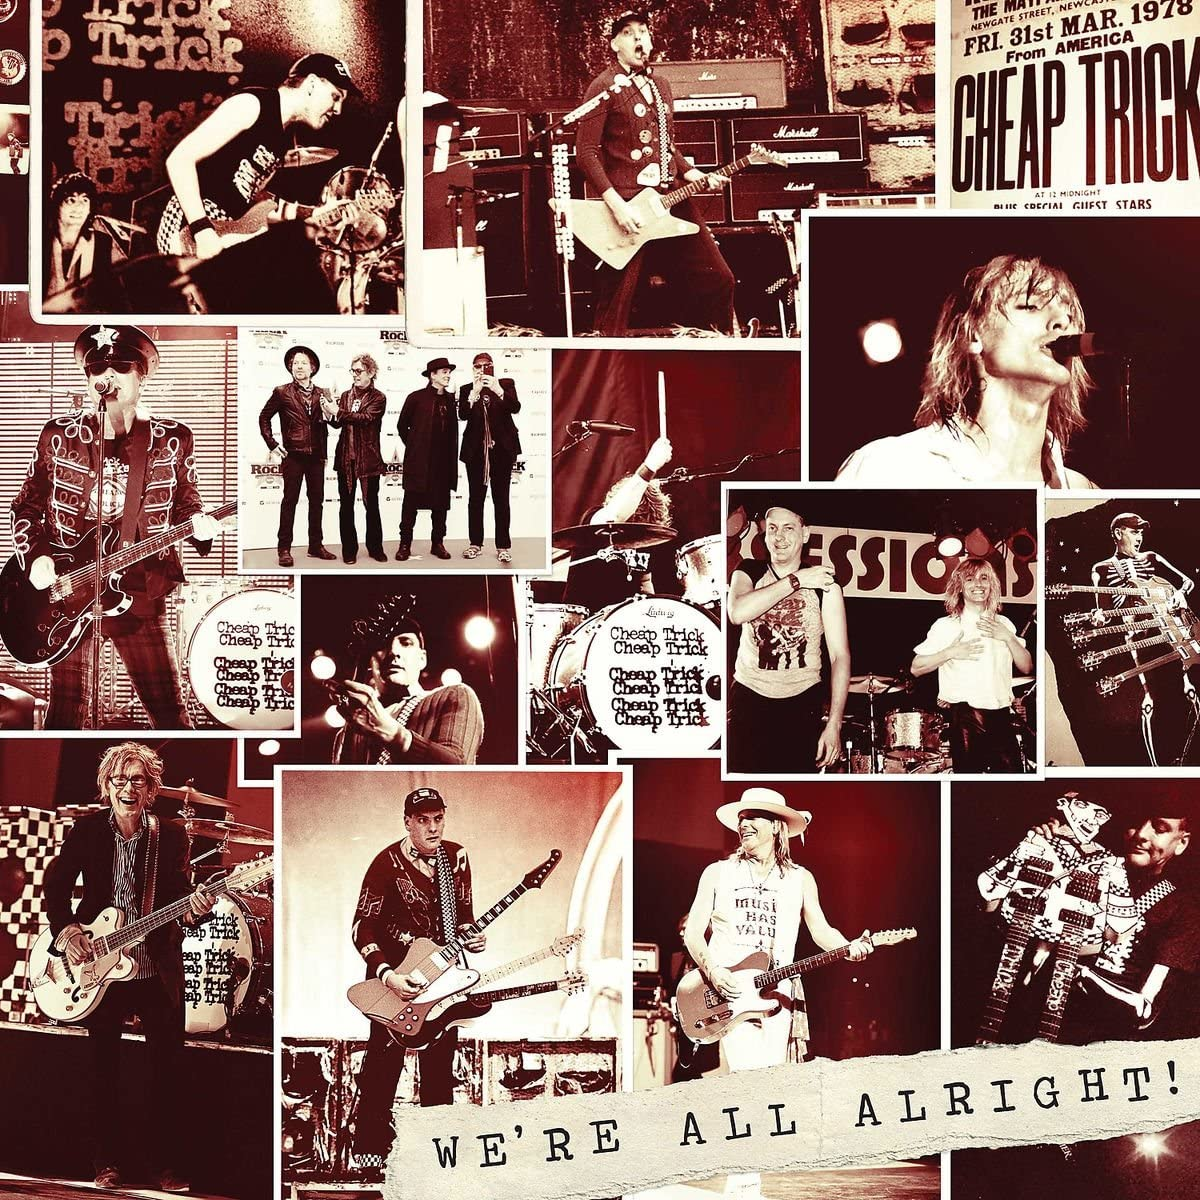 We're All Alright (LP)